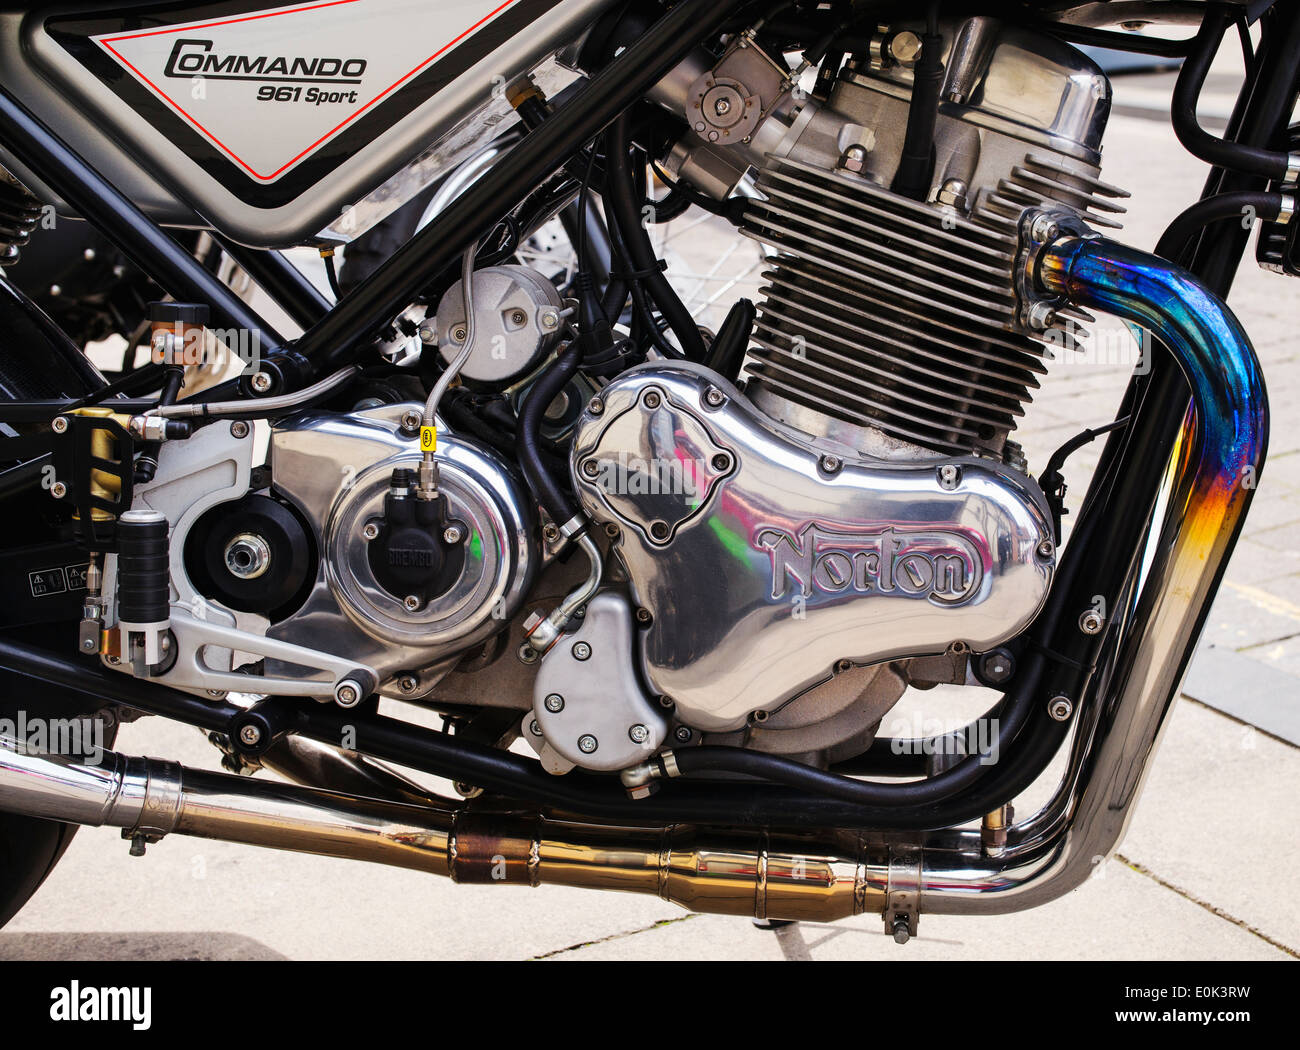 Norton Commando 961 motorcycle. Classic british motorcycle - Stock Image